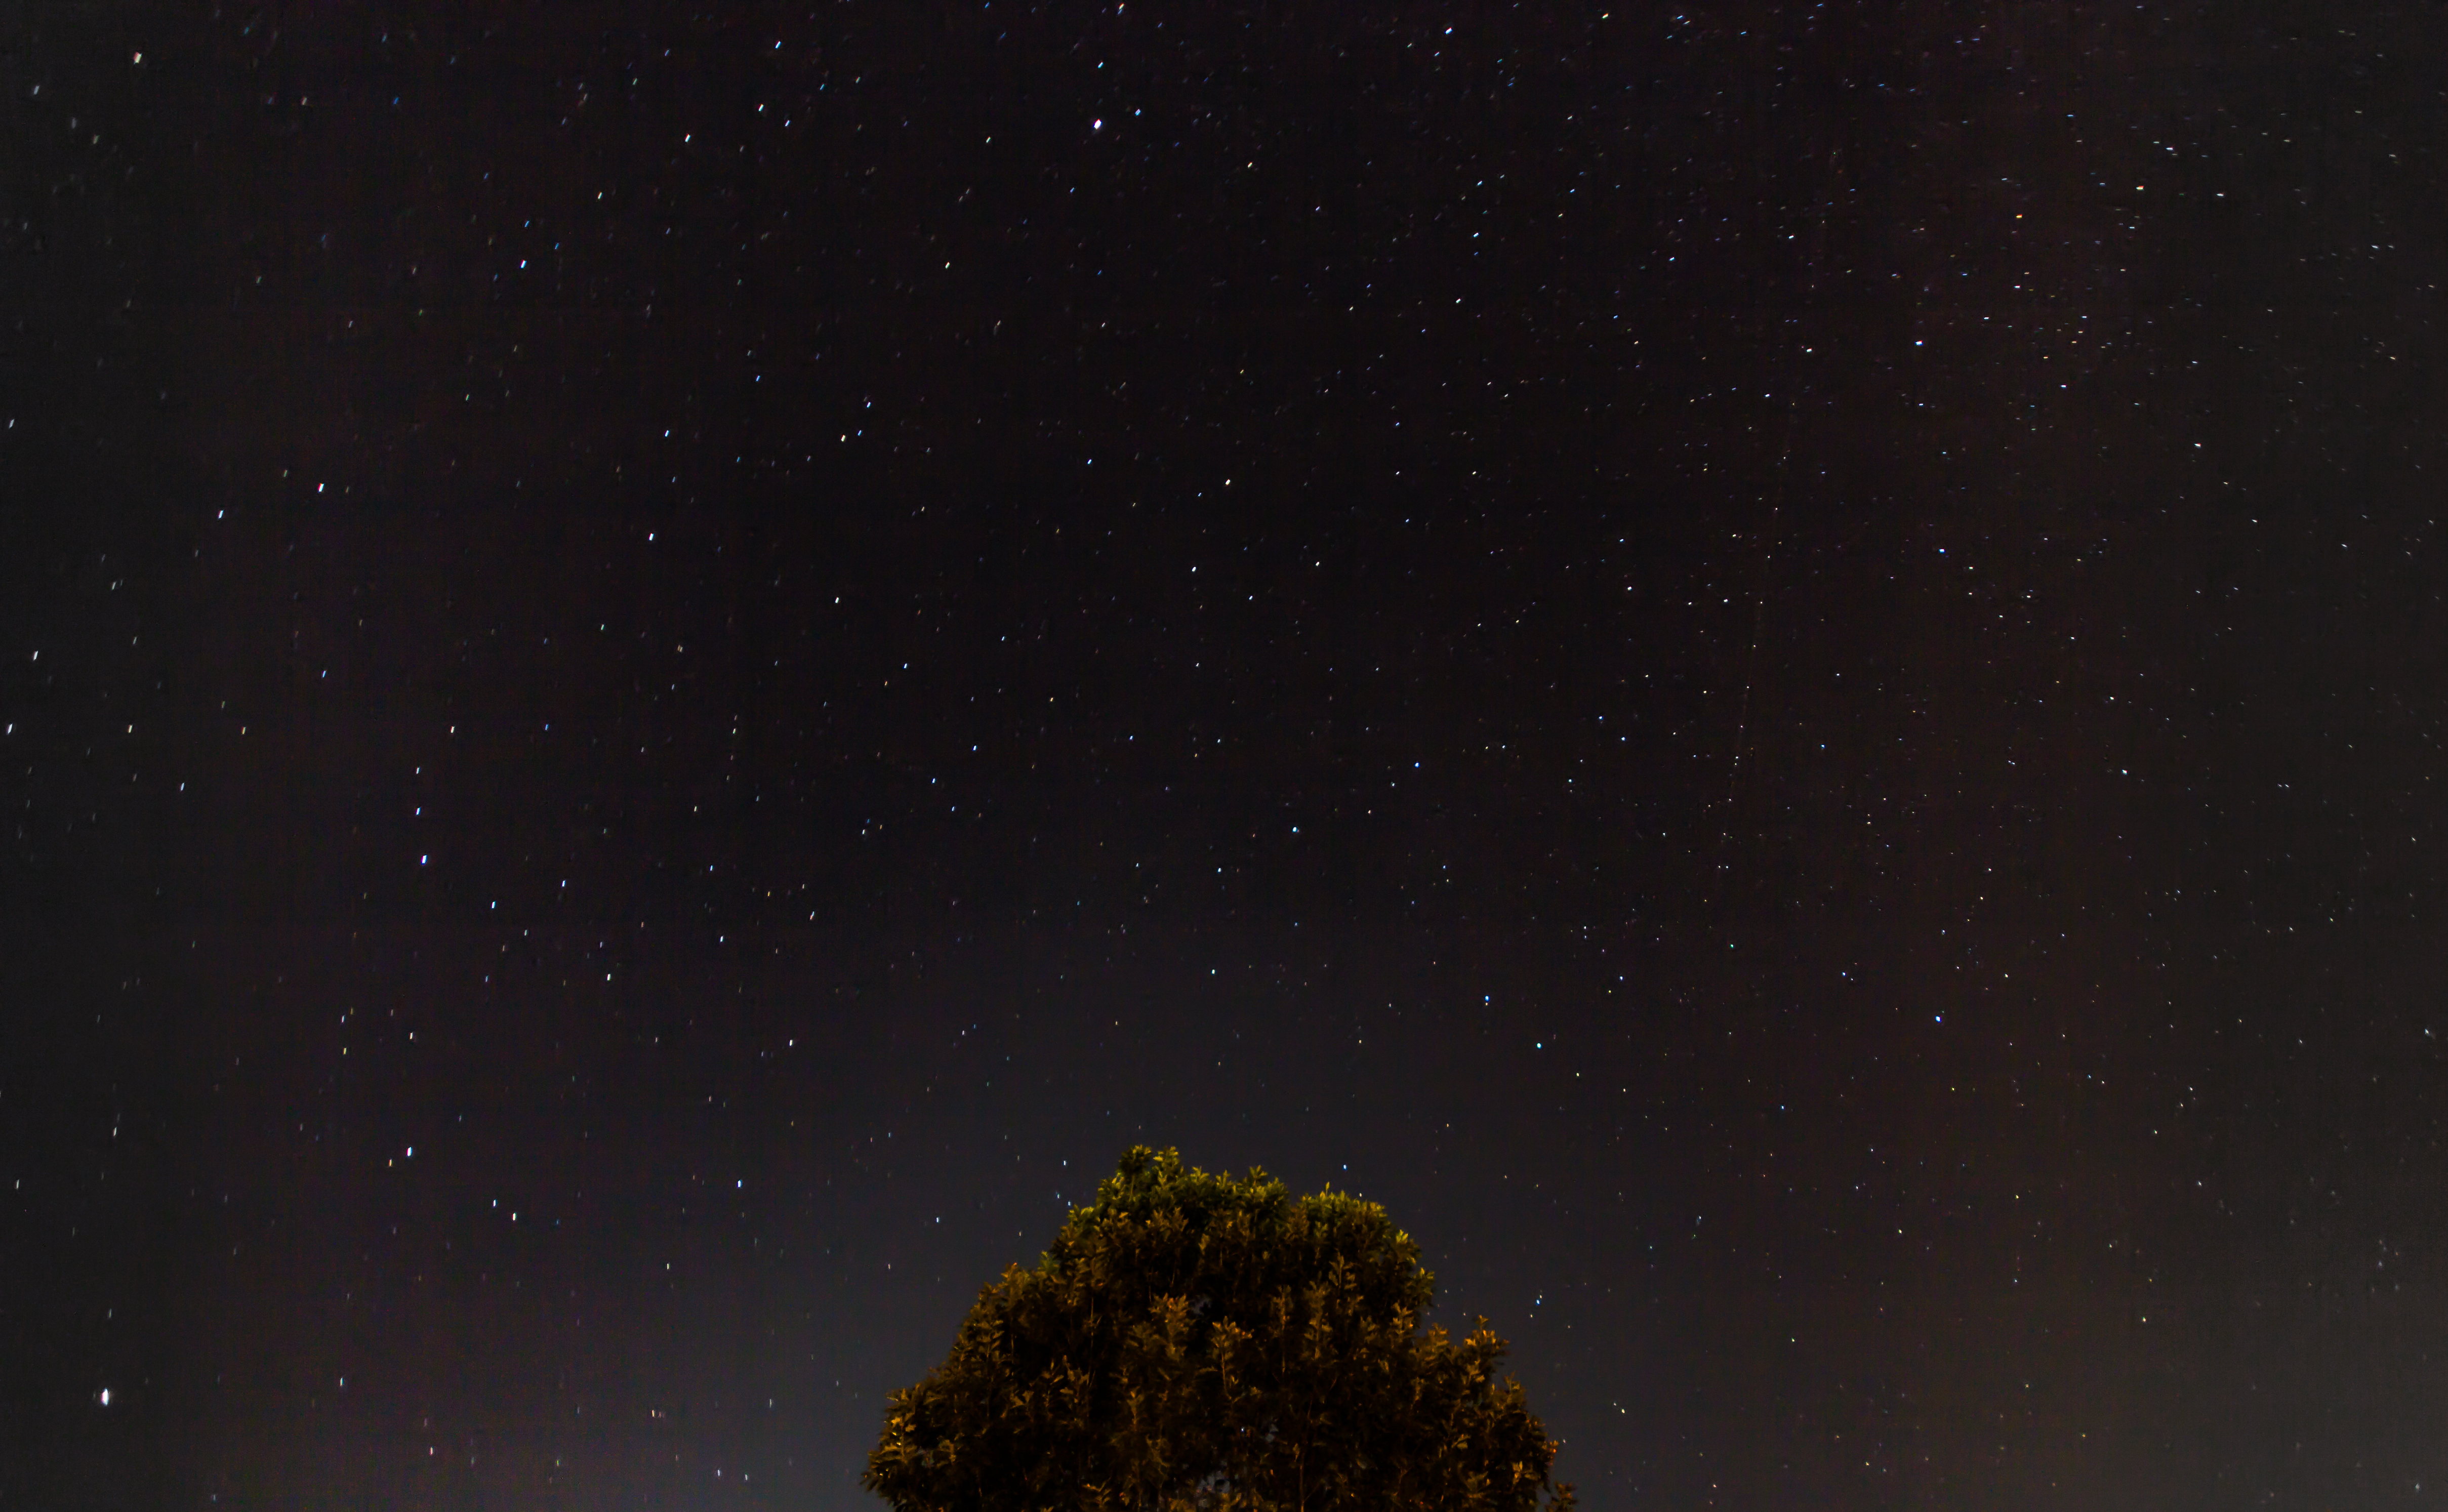 night-stars-astral-photography-80361